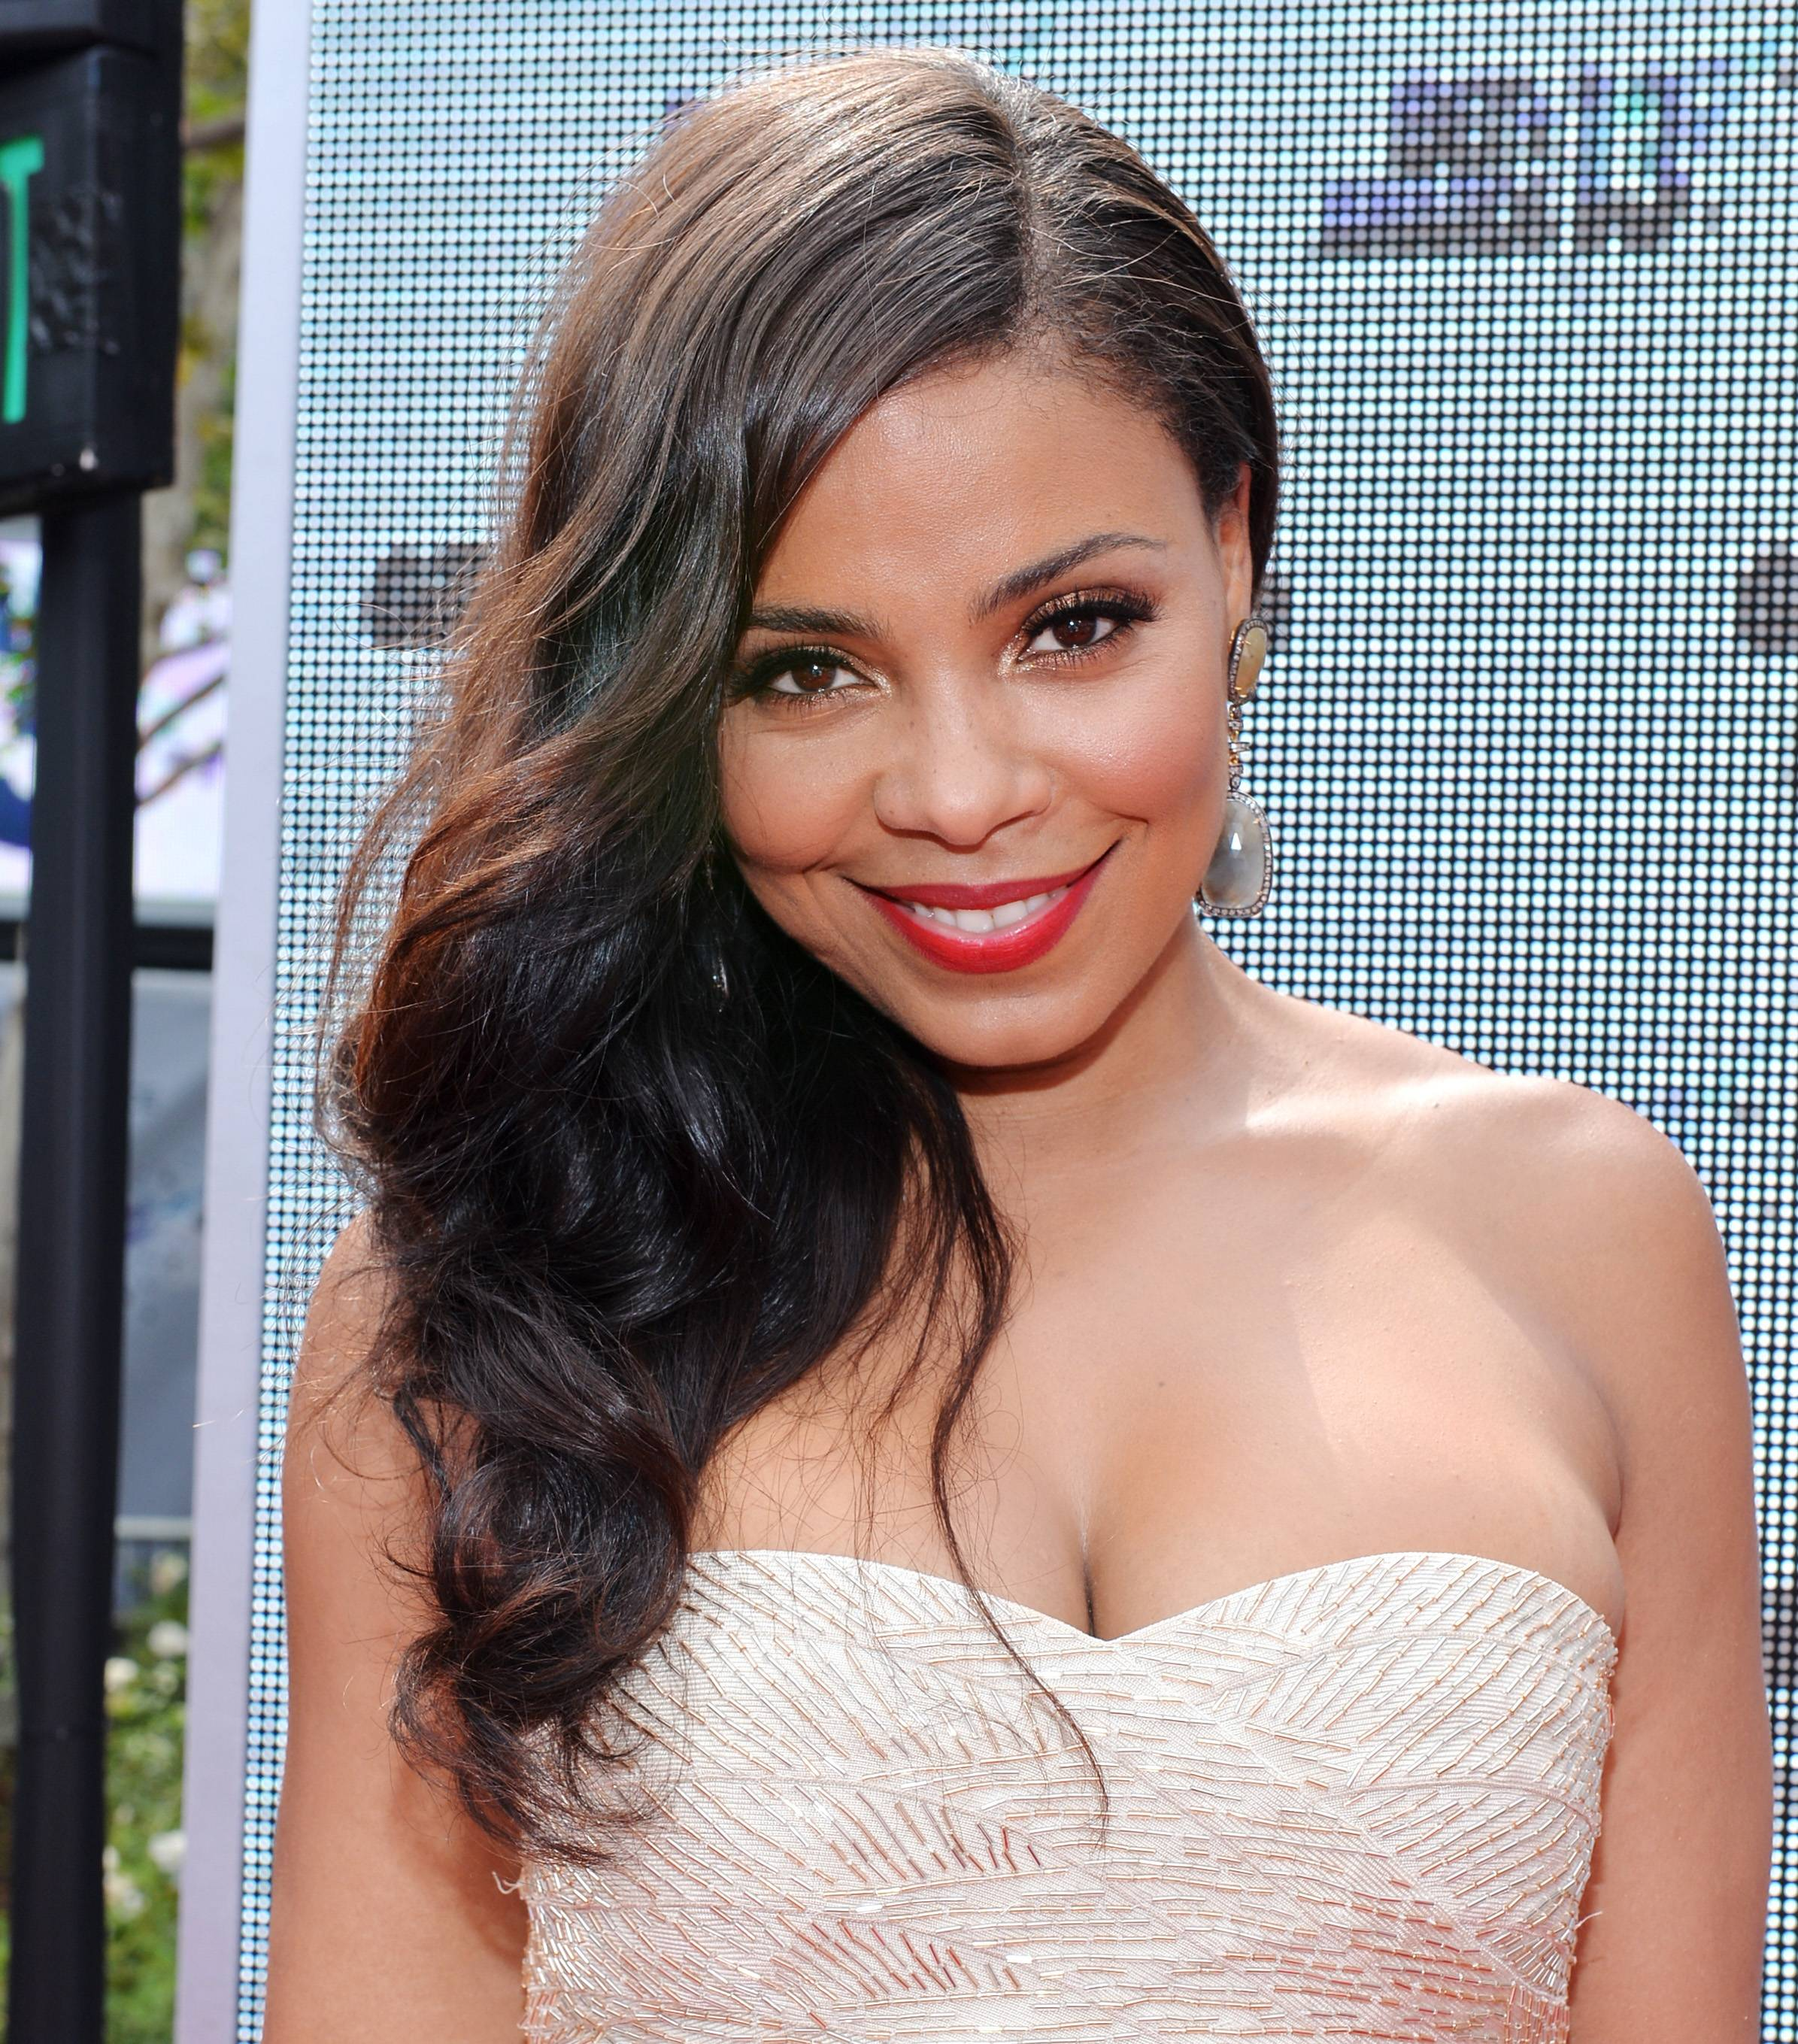 Sanaa Lathan: September 19 - The beautiful Love & Basketball star celebrates her 42nd birthday.  (Photo: Alberto Rodriguez/BET/Getty Images for BET)